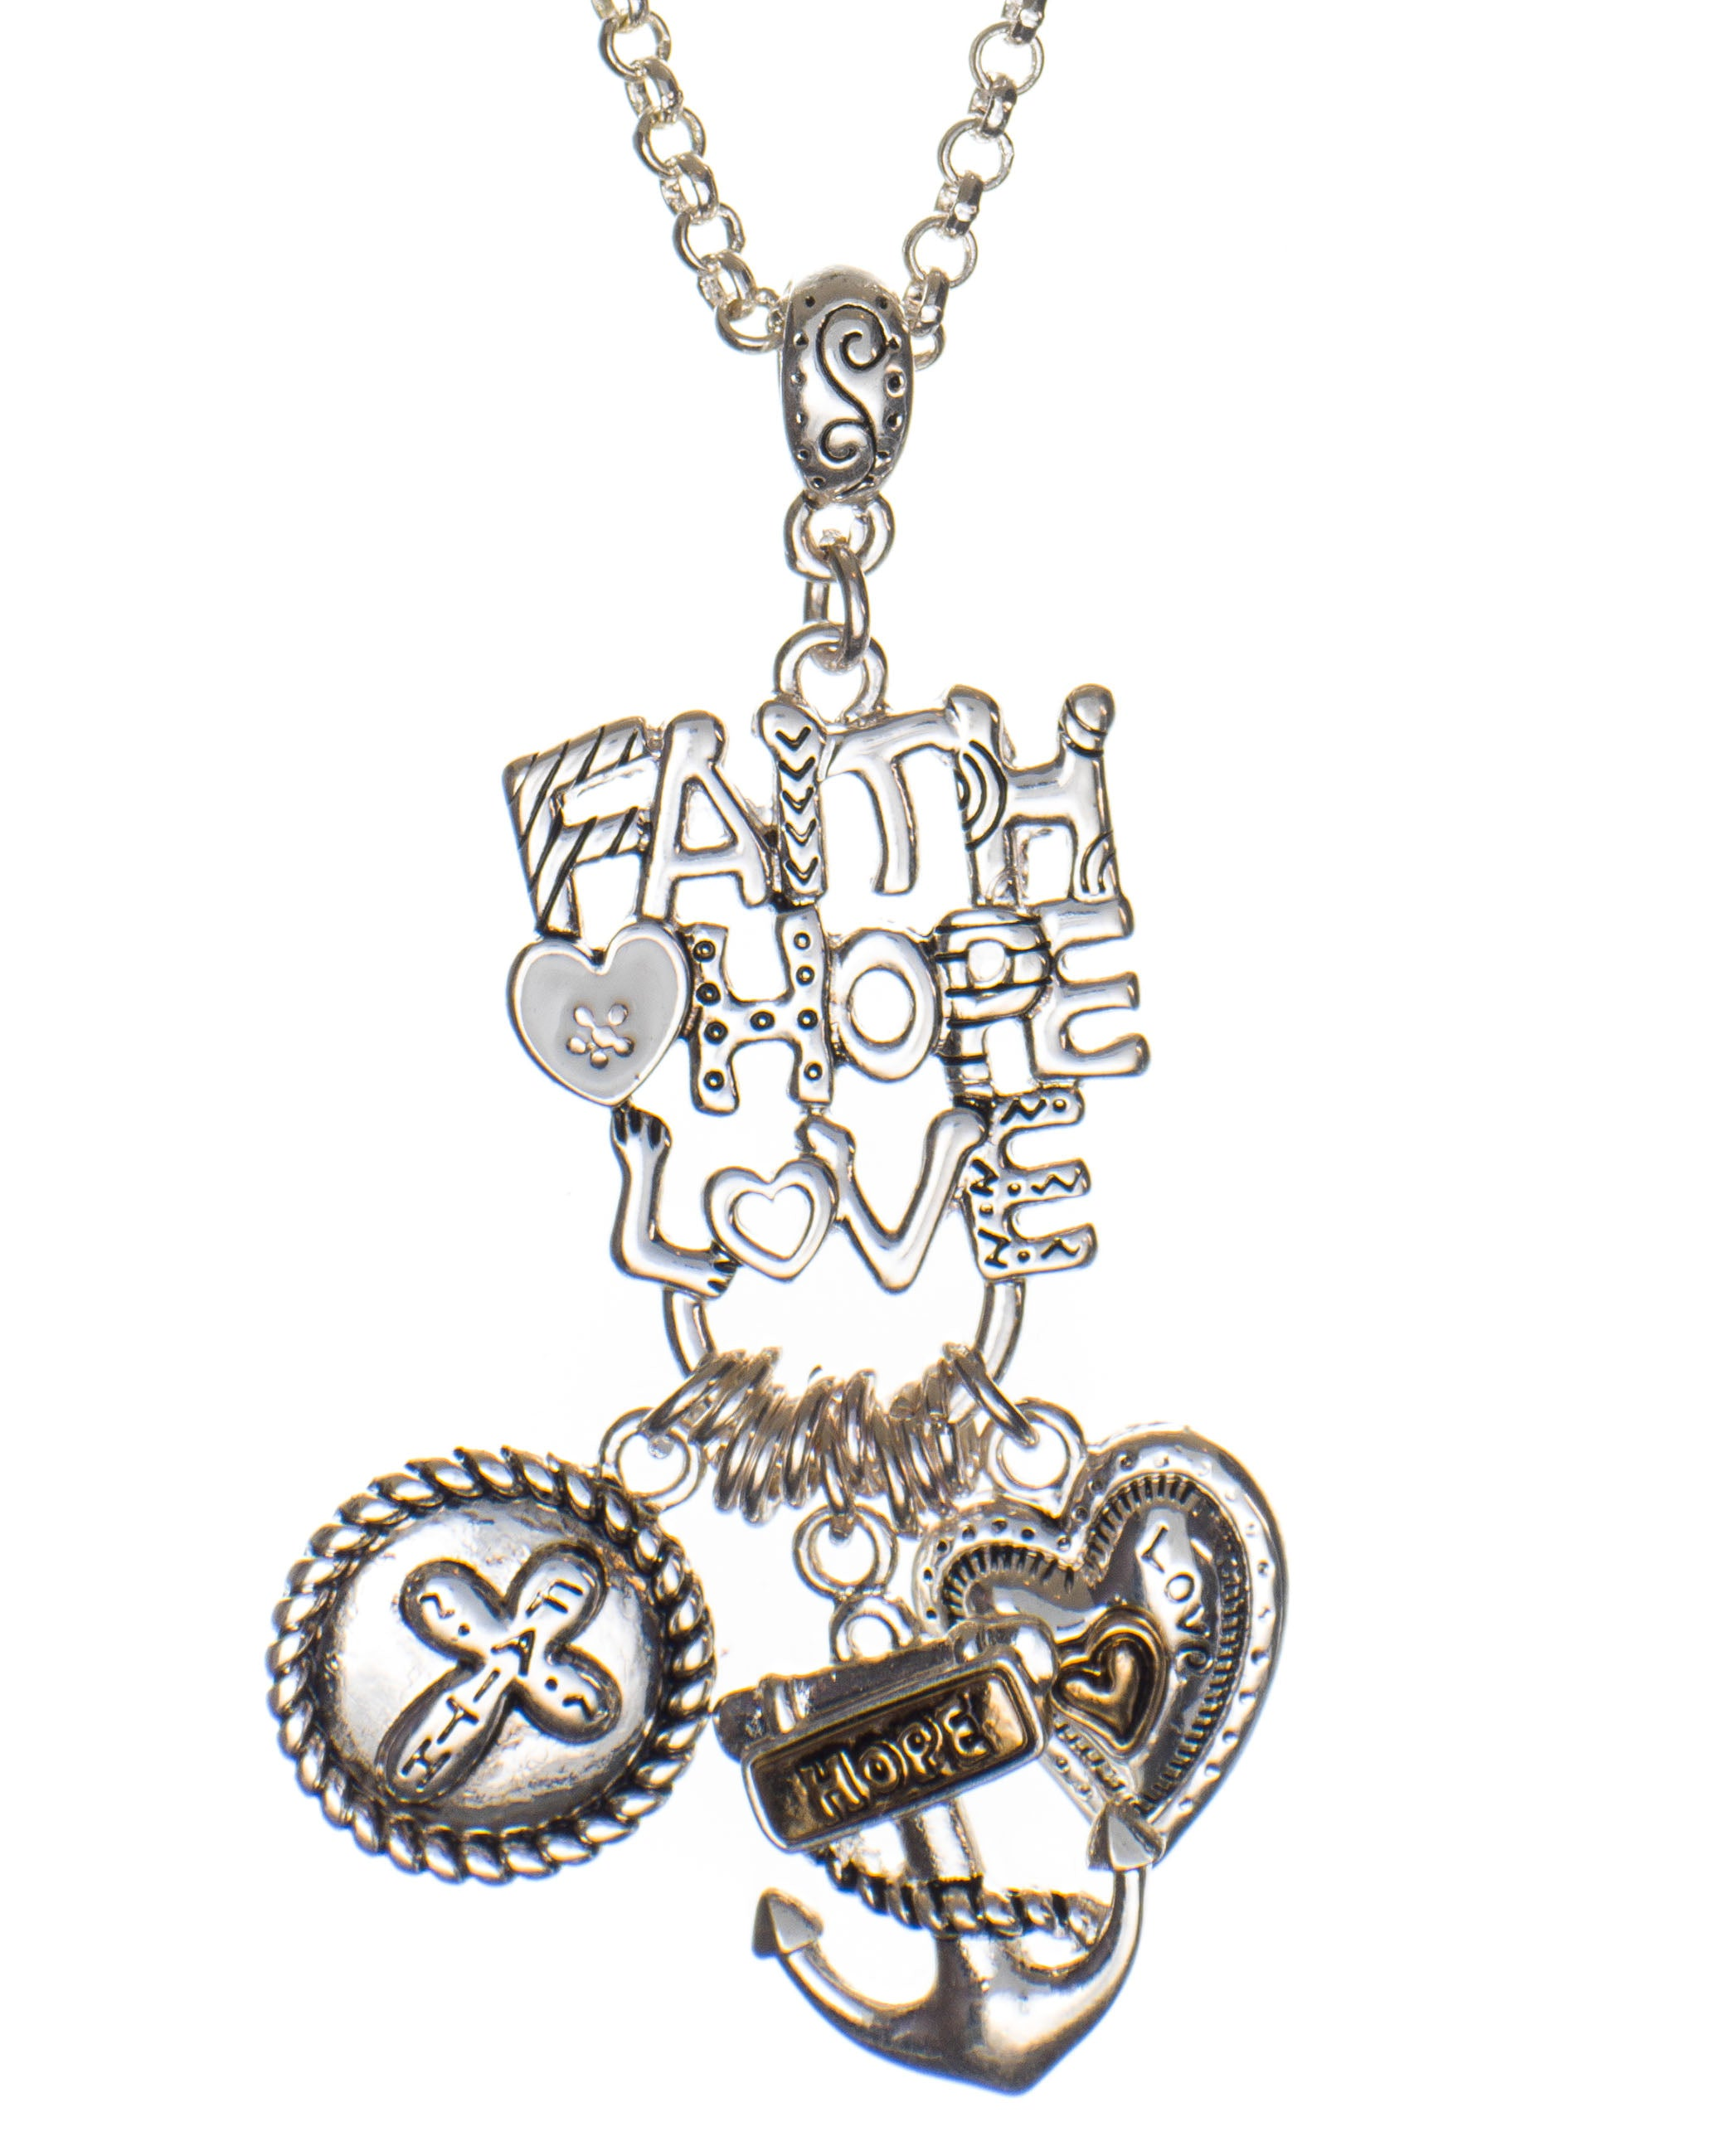 hope oblacoder faith necklace silver pendant love sterling elegant